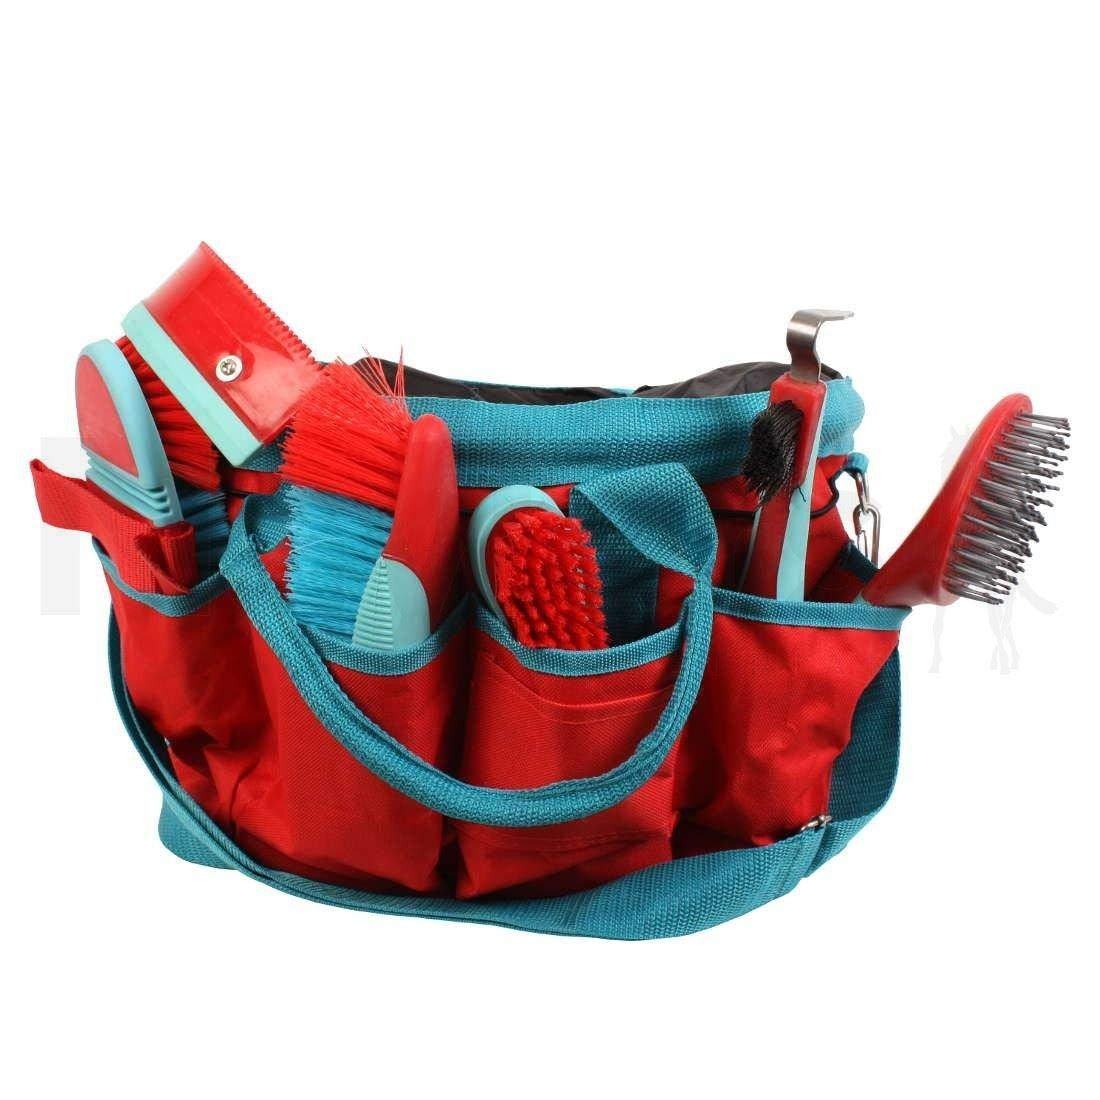 Roma Deluxe 6 Piece Grooming Bag (One Size) (Watermelon/Bright Blue)